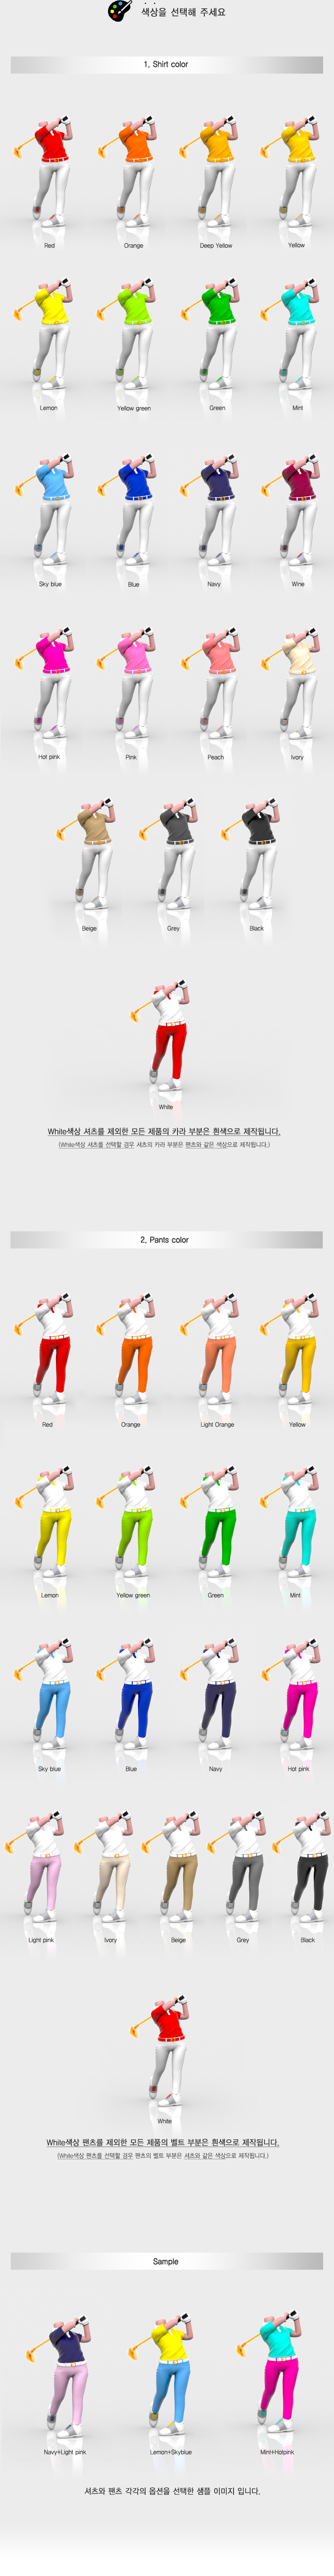 golf_w_pants_coloroption_02